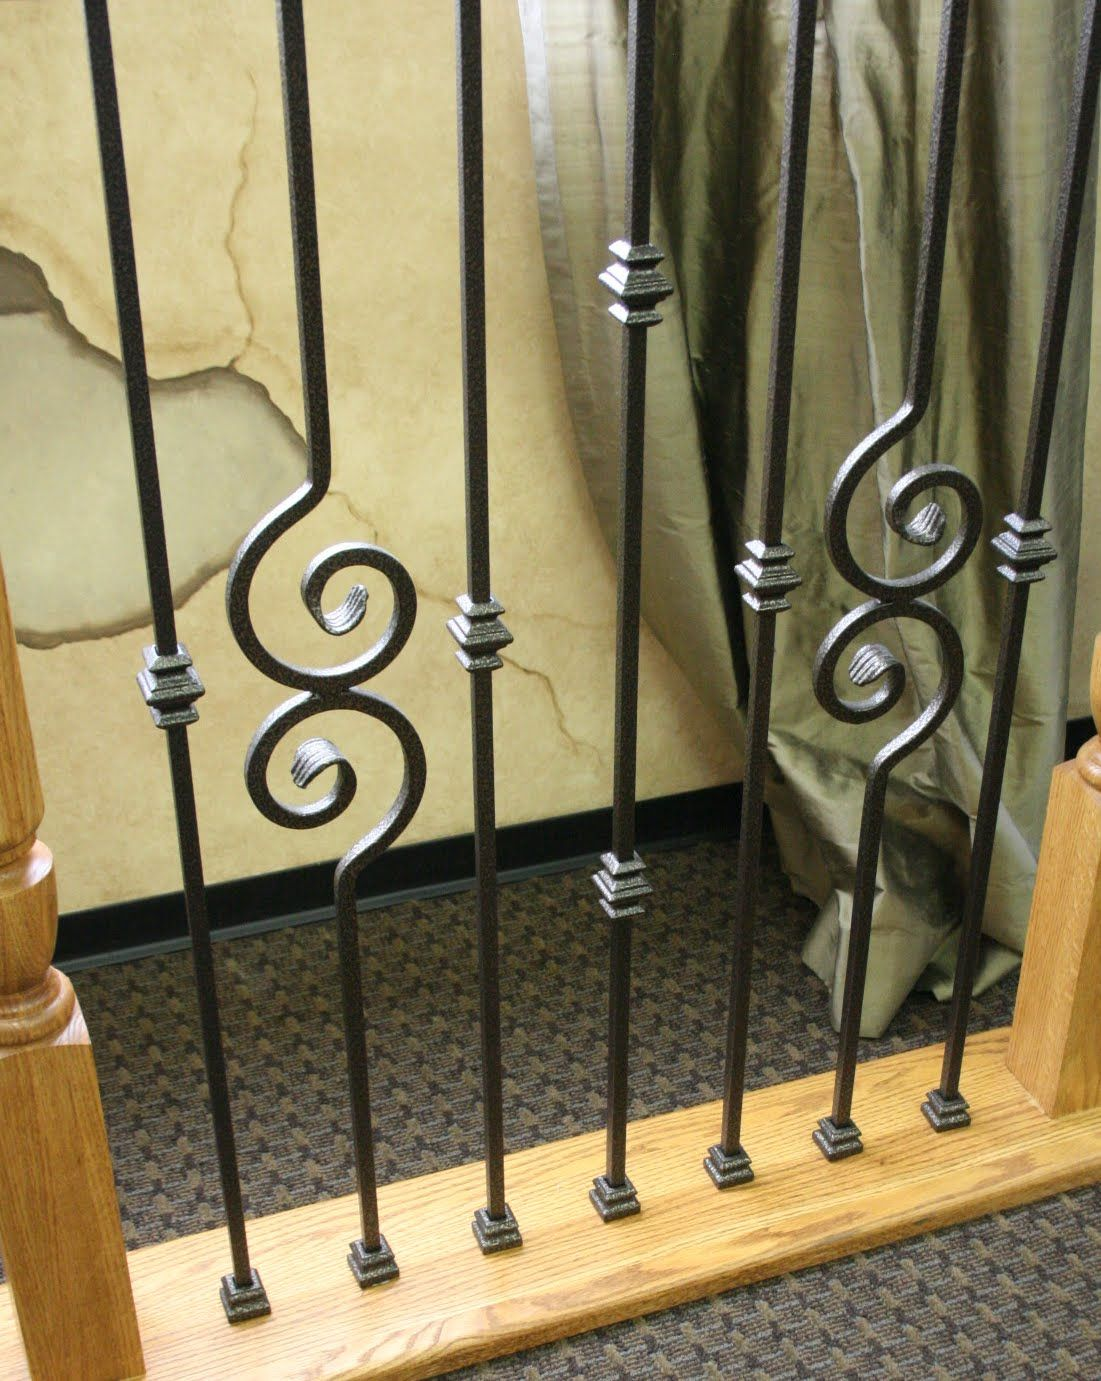 Best Cedar Hill Ranch Balastrades Spindles And Newel Posts Newel Posts Cedar Hill Cast Iron Fence 640 x 480